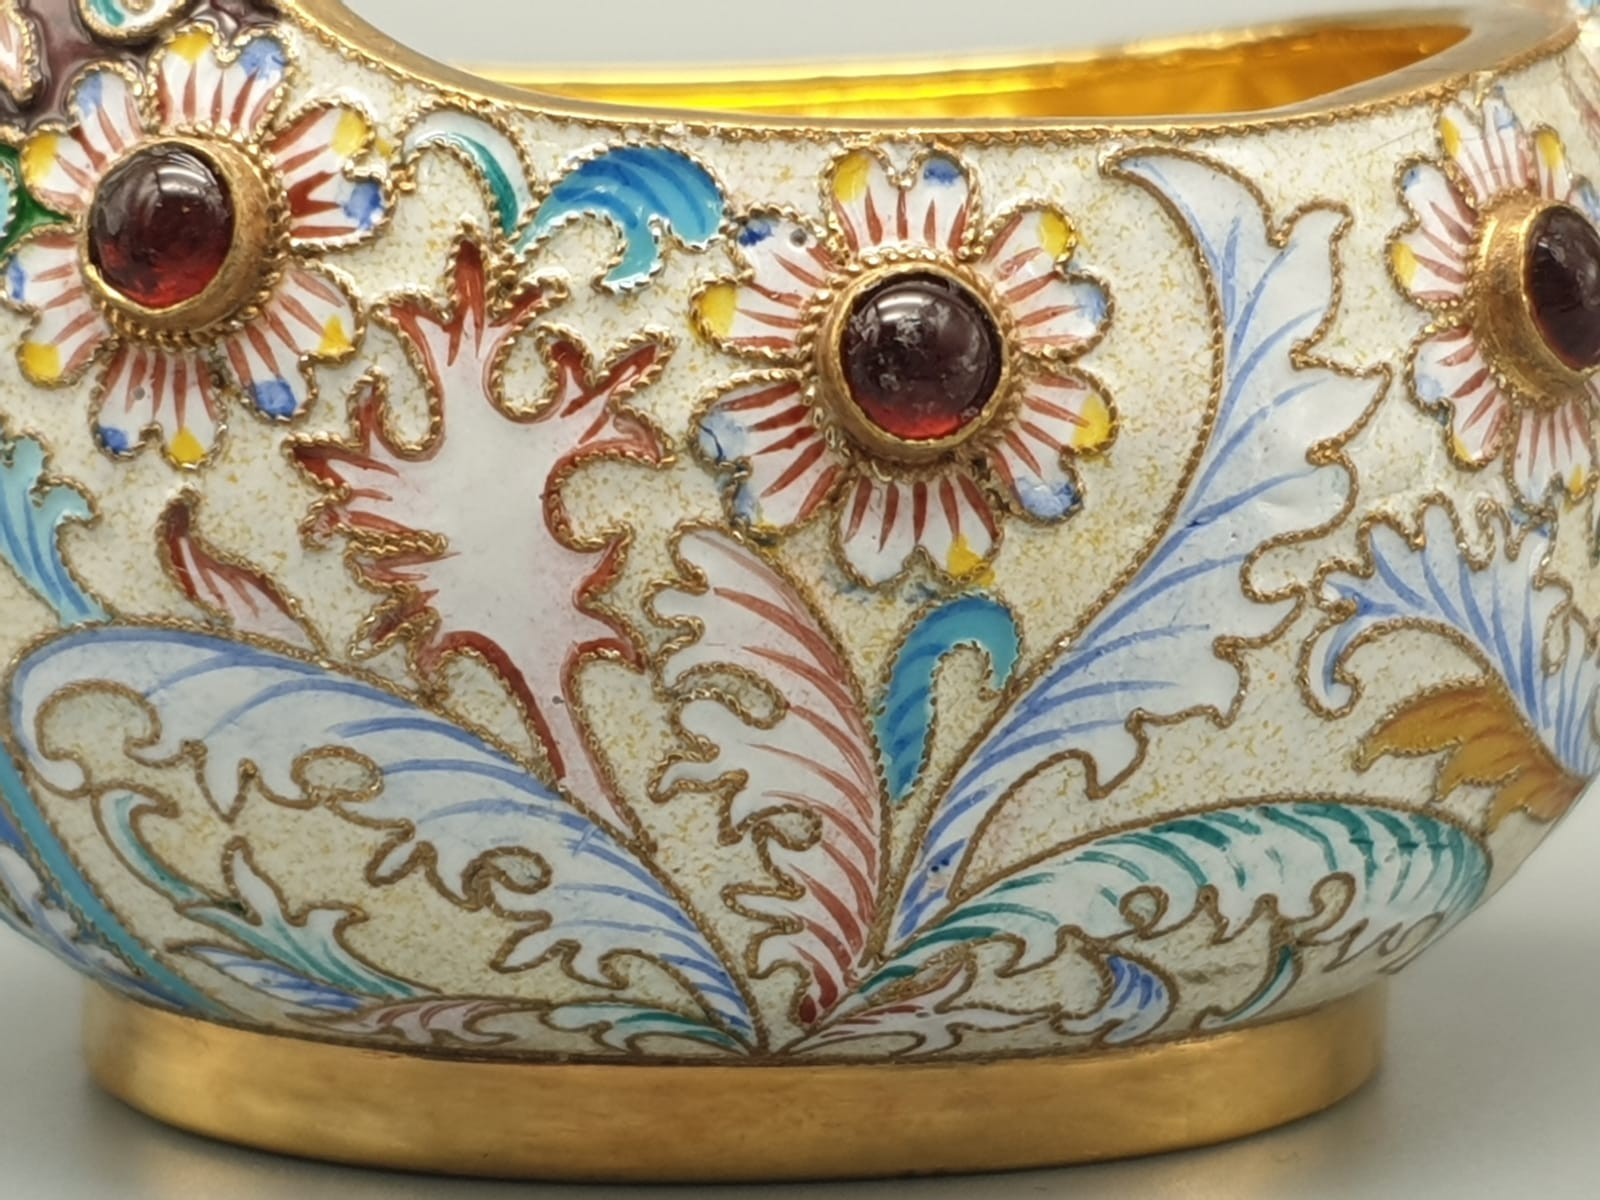 Pair of Russian 20th century silver enamel gemset kavosch bowl in the form of birds, an exquisite - Image 14 of 29